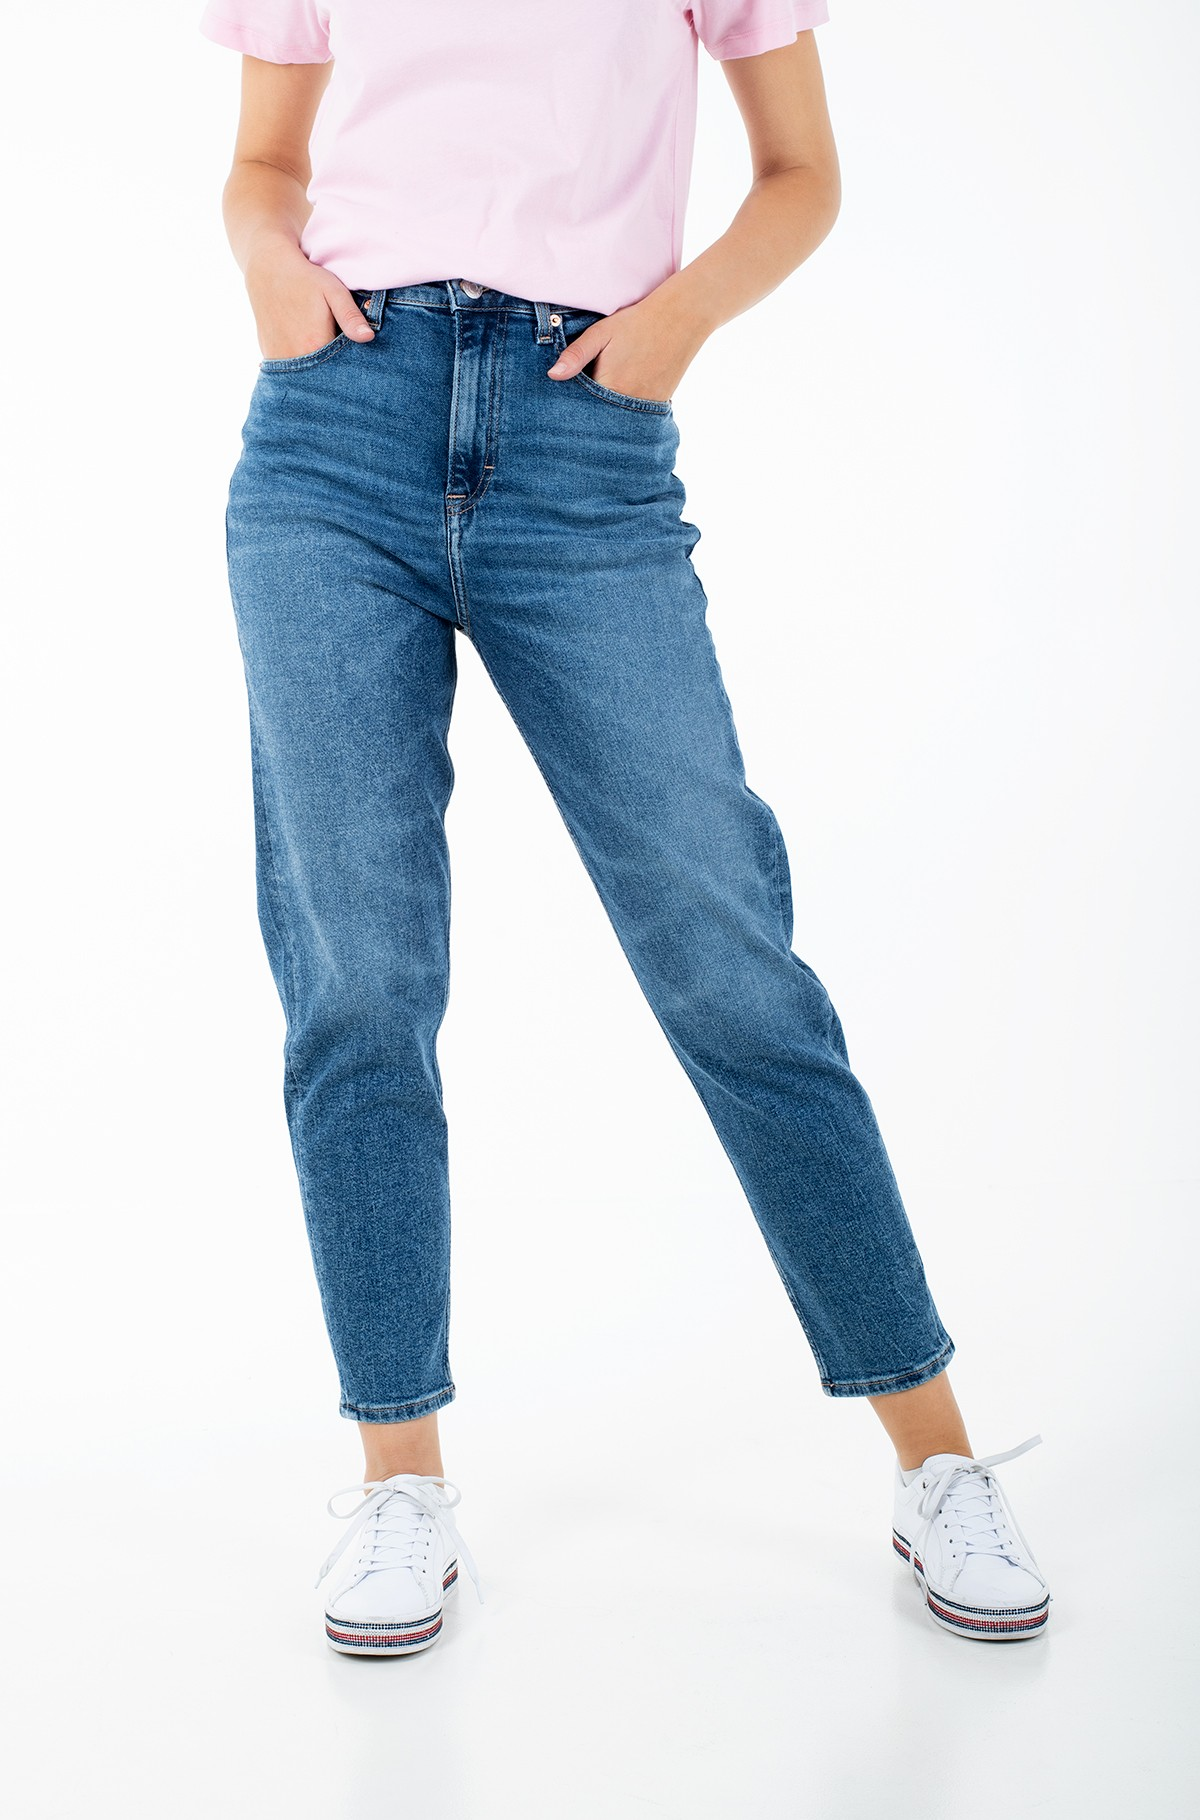 Jeans MOM JEAN CE 732 SV MD BLUE CMFRT-full-1